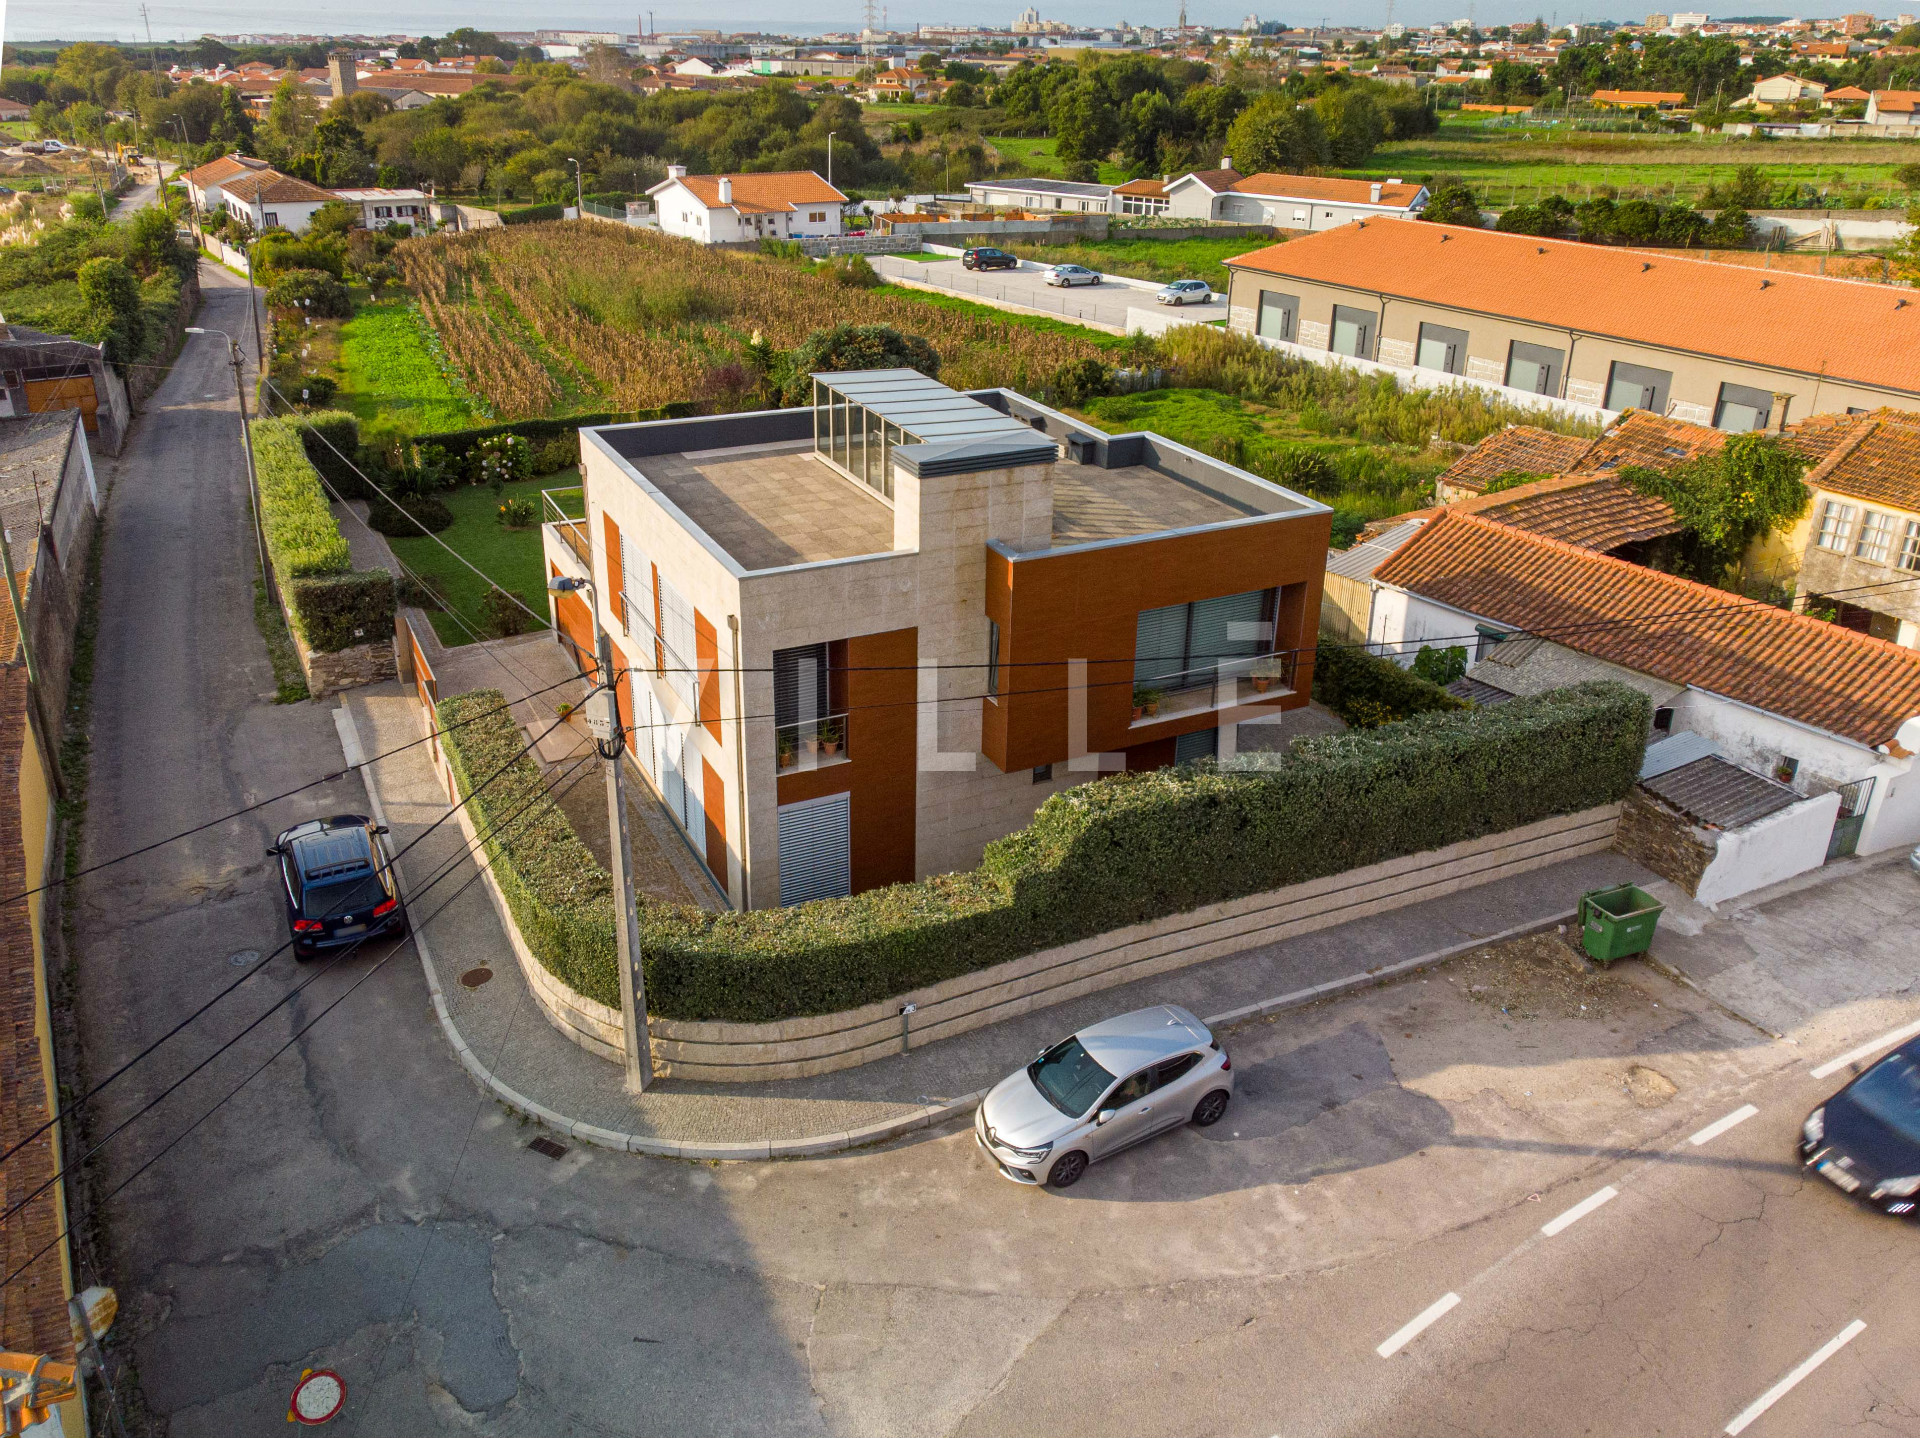 House 4 Bedrooms Modern Architecture - Silvalde, Espinho